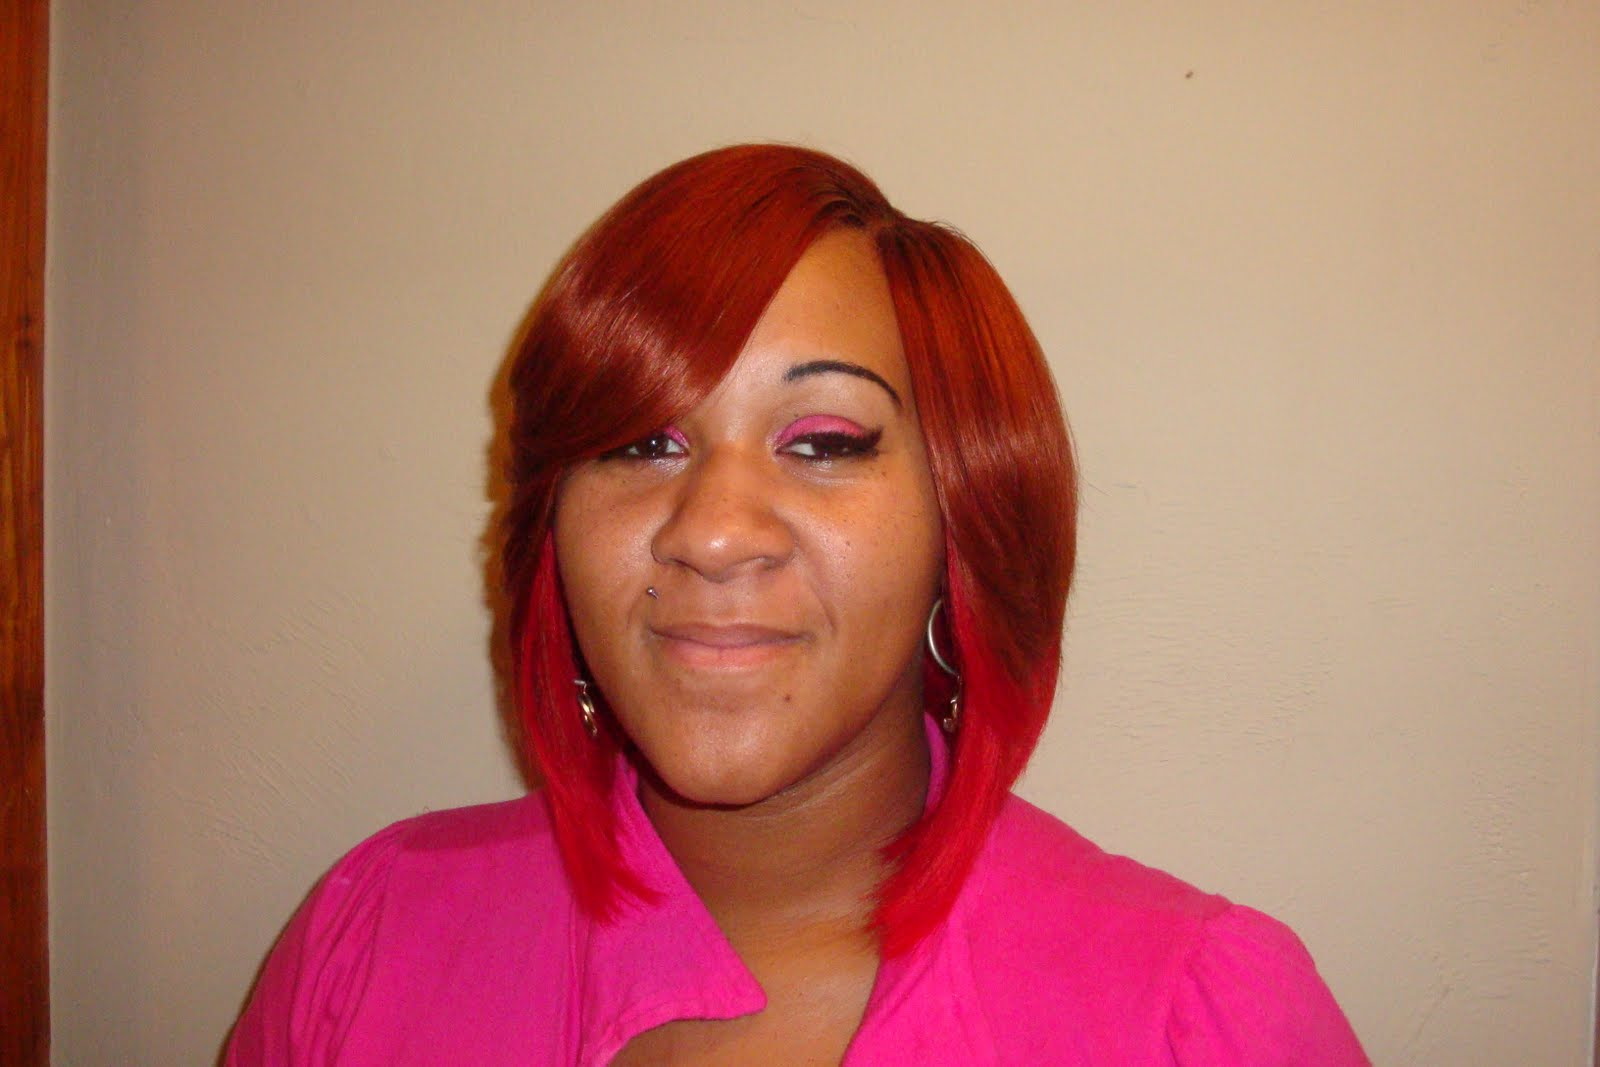 Bob Sew Ins http://yinkasdesign.blogspot.com/2011/08/photos-more-banging-bobs.html